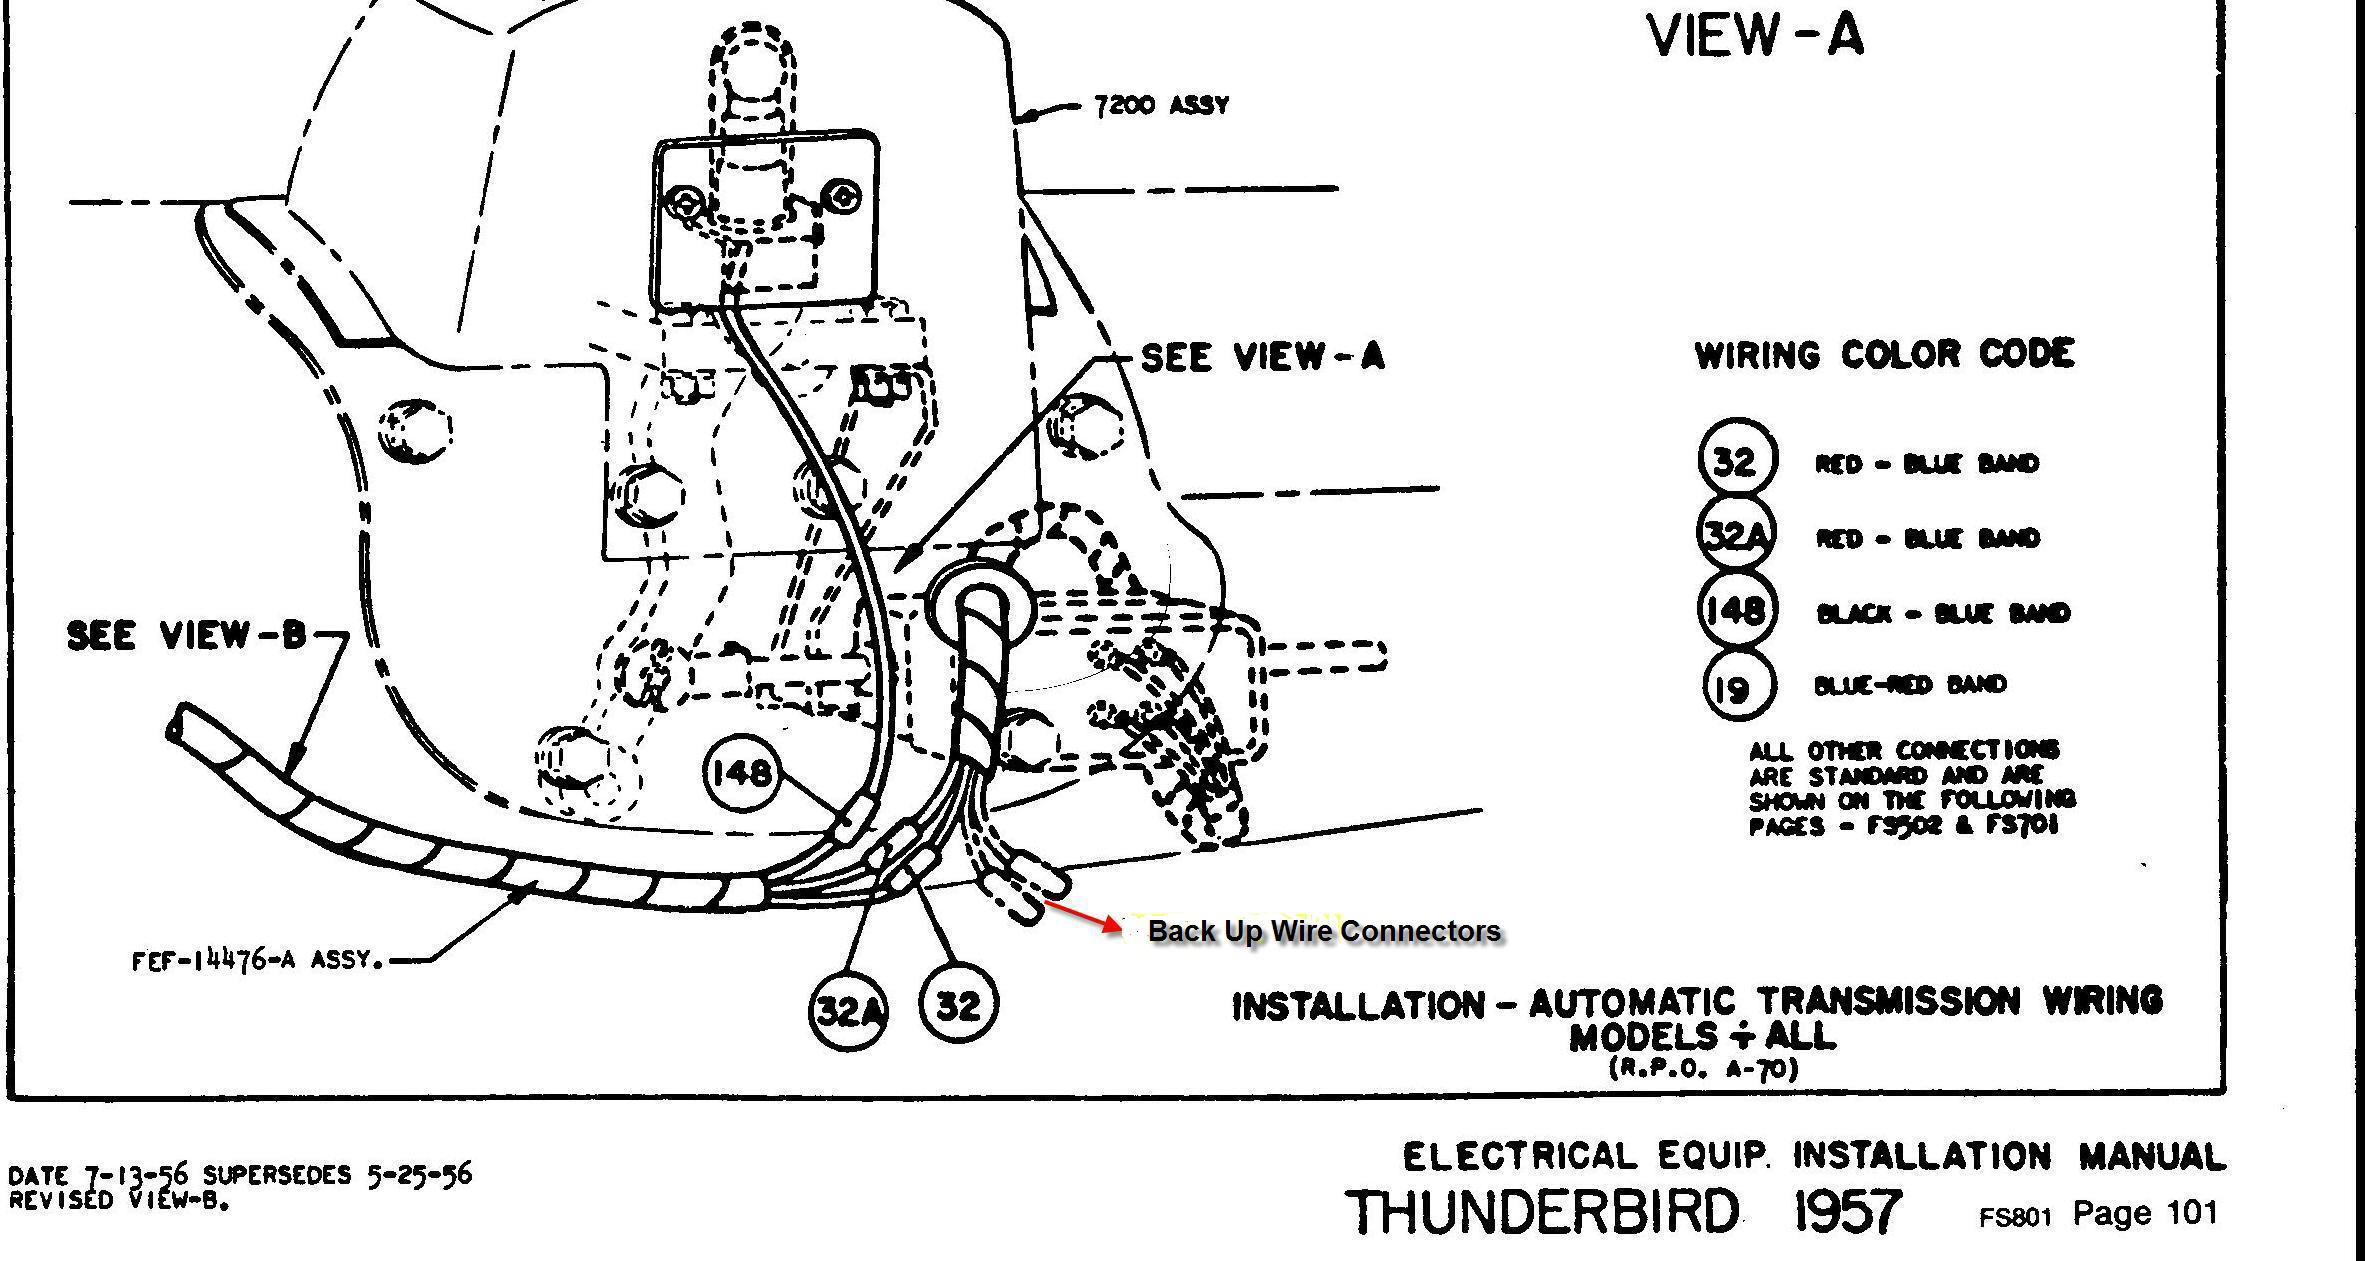 Wiring Diagram For 57 Thunderbird Wiring Diagram Section